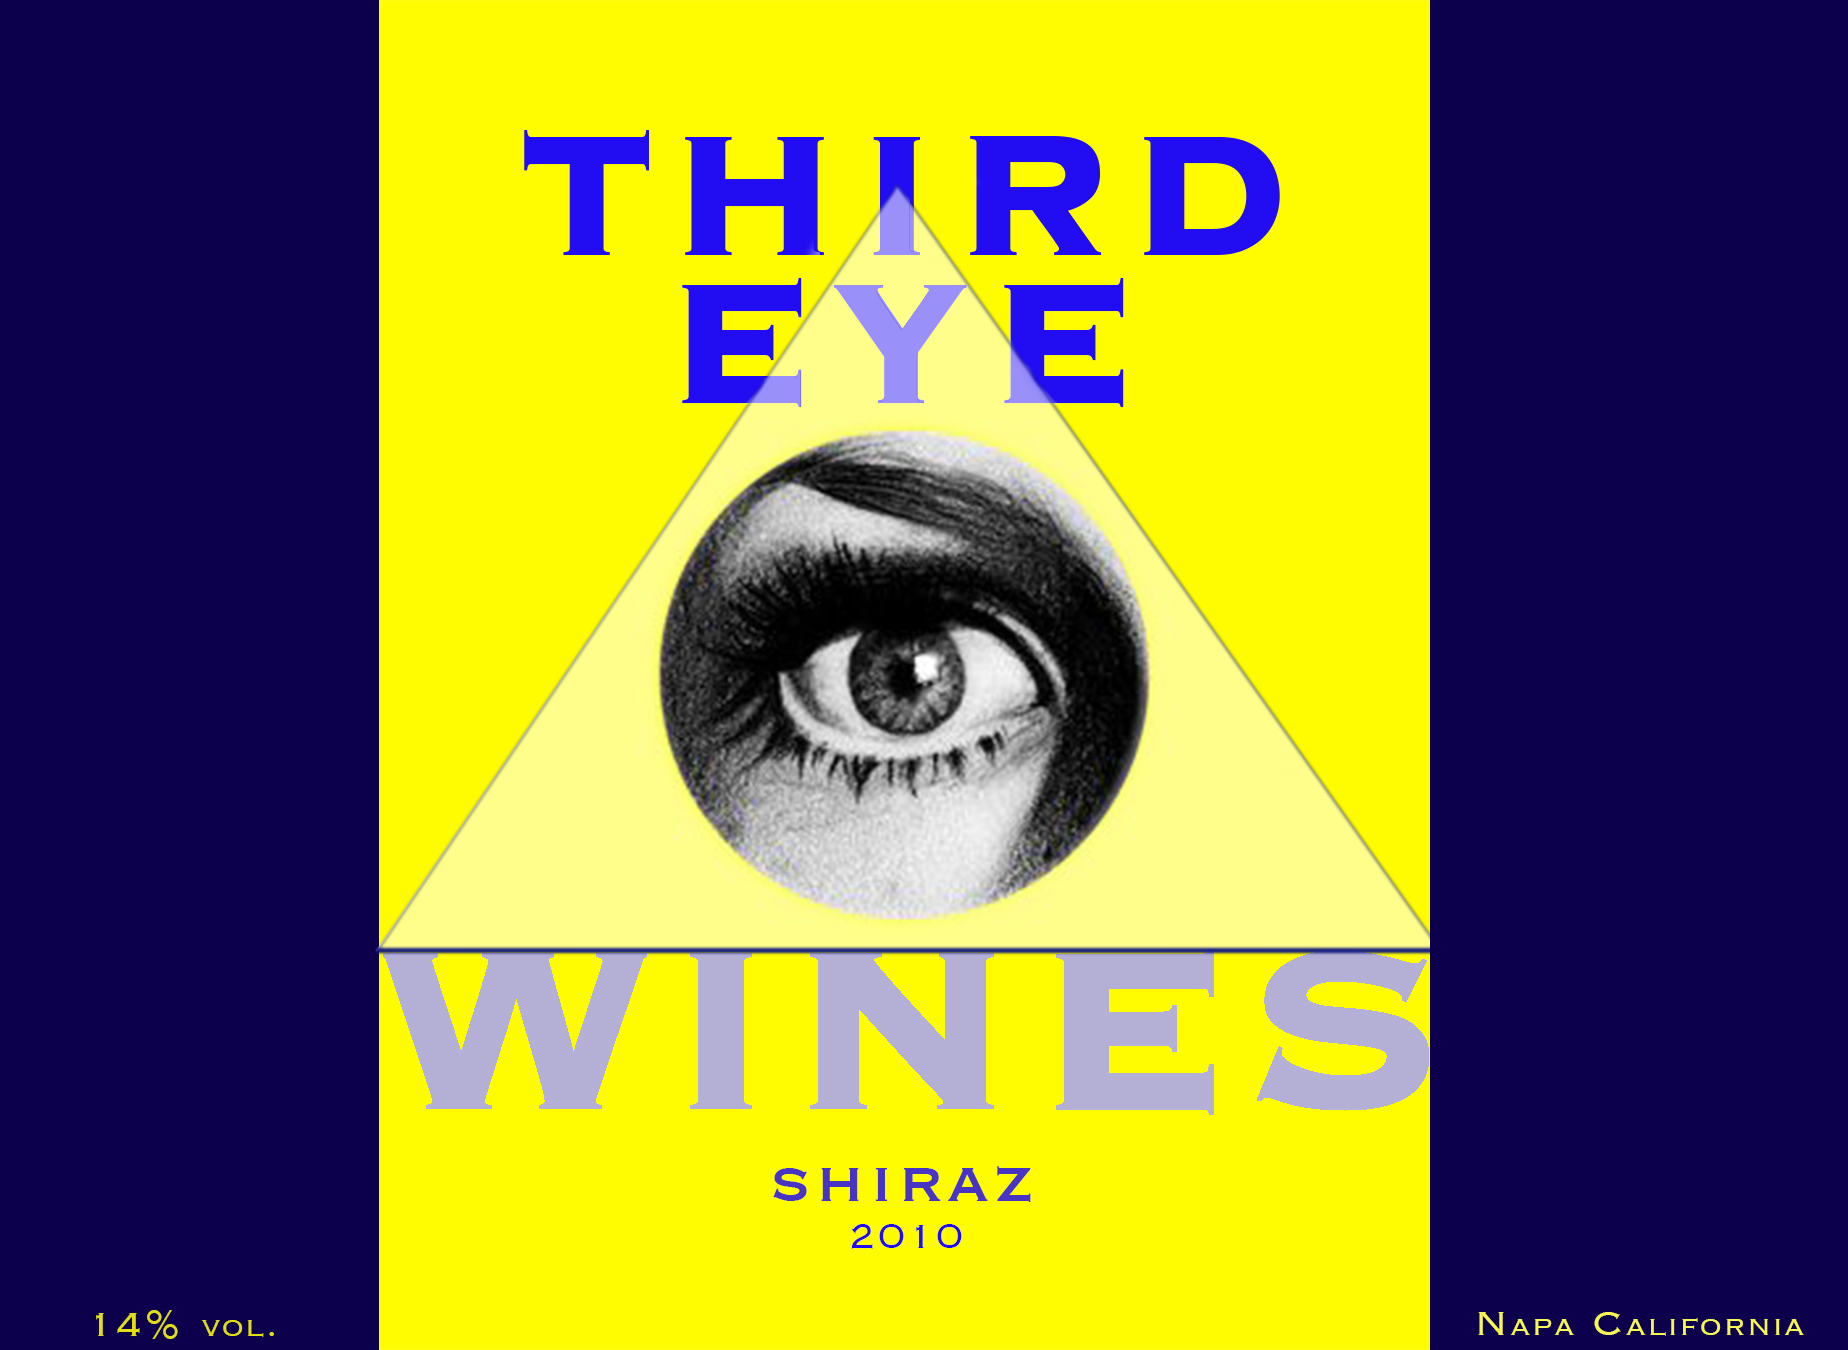 Third Eye Wines